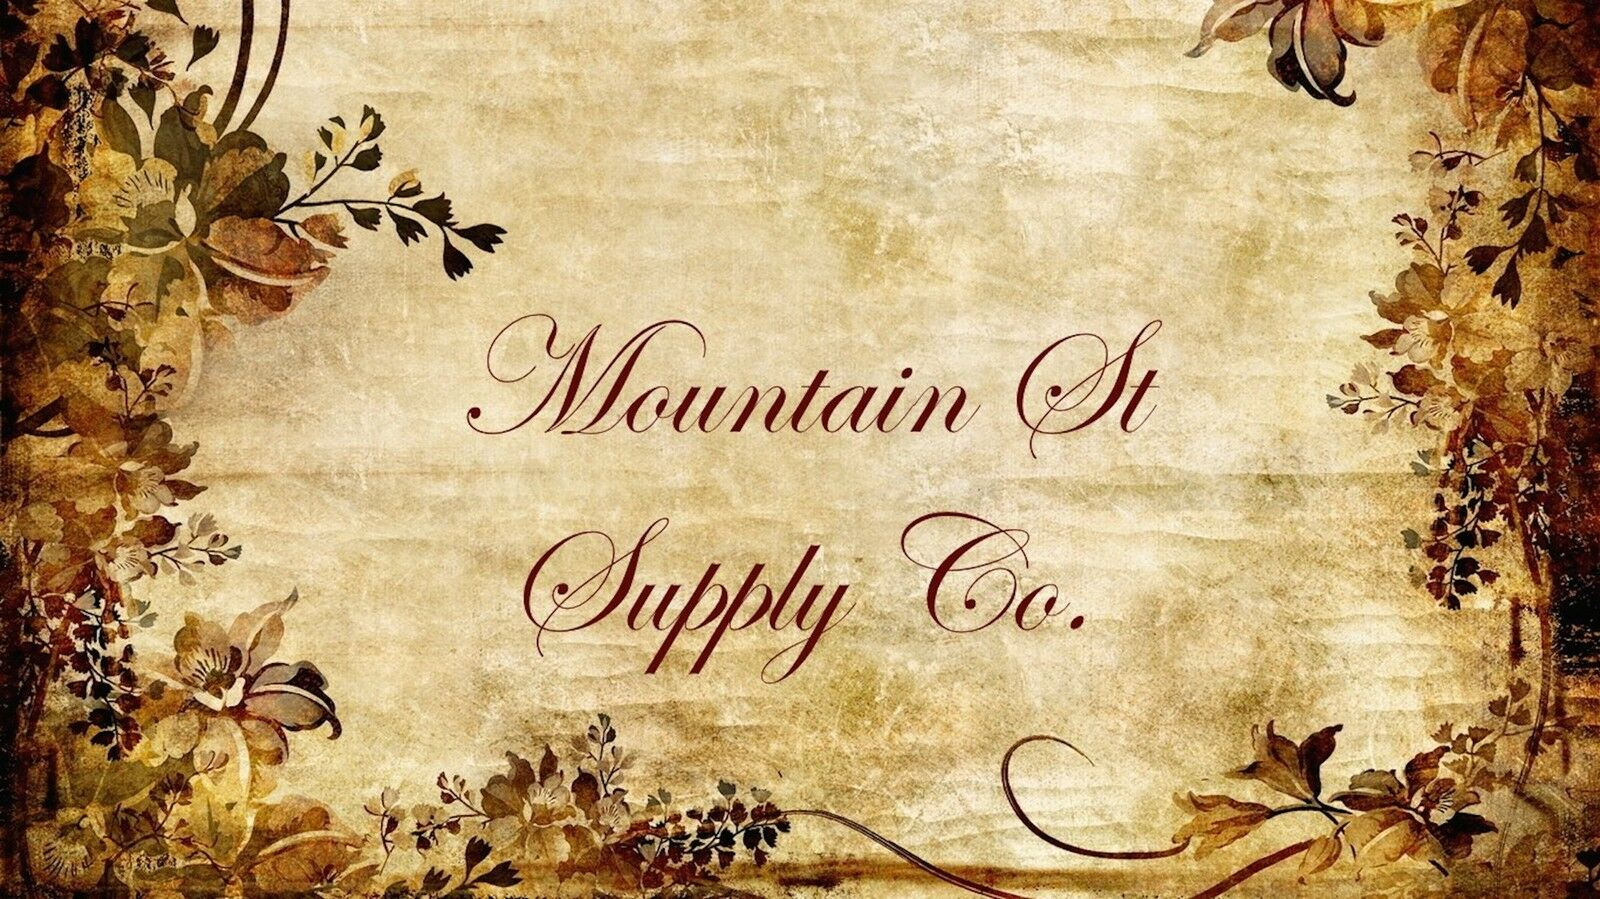 Mountain St Supply Co